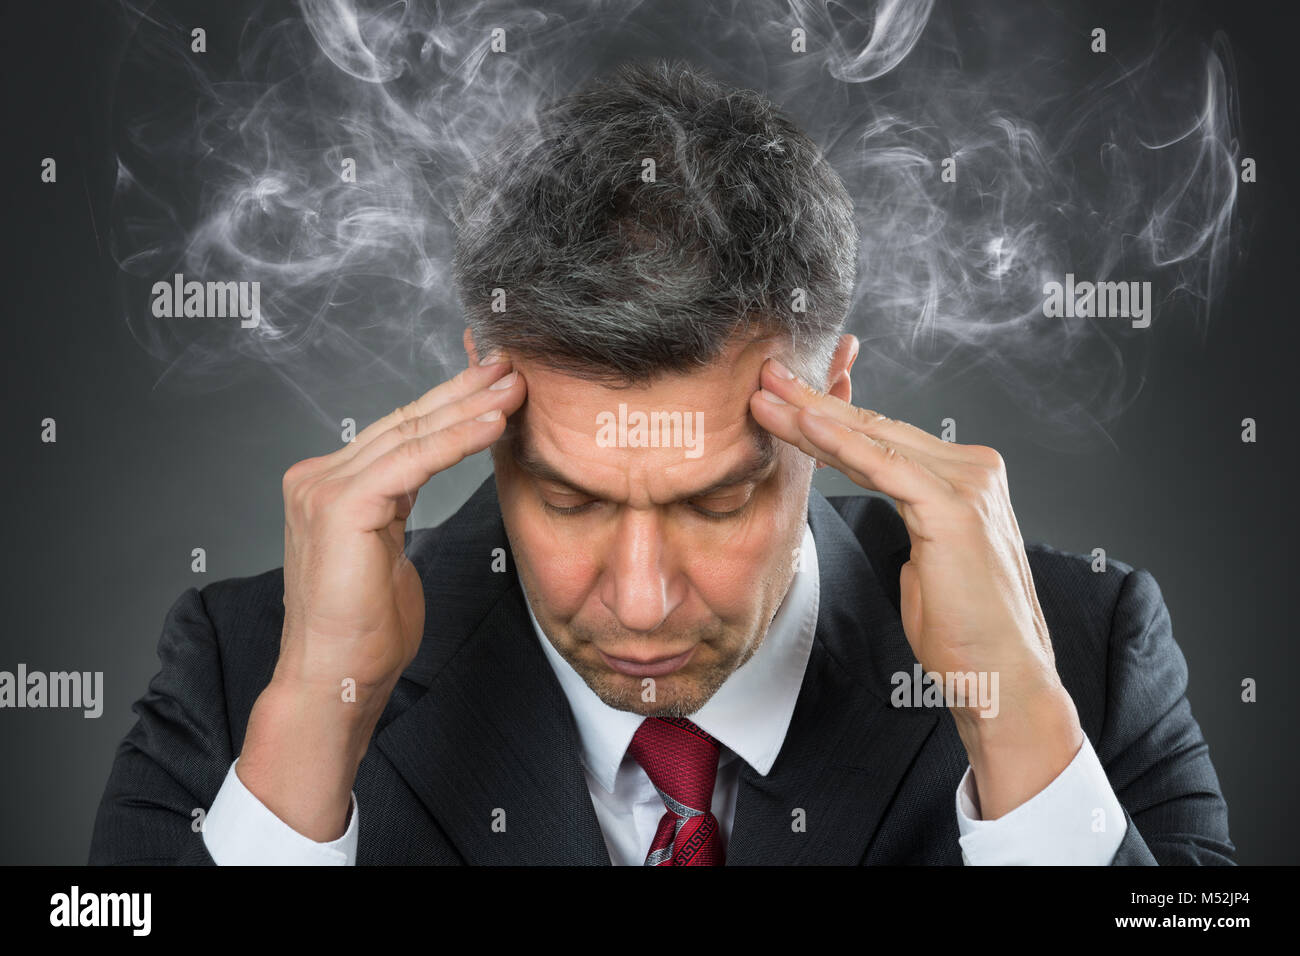 Portrait Of Mature Businessman Suffering From Headache - Stock Image